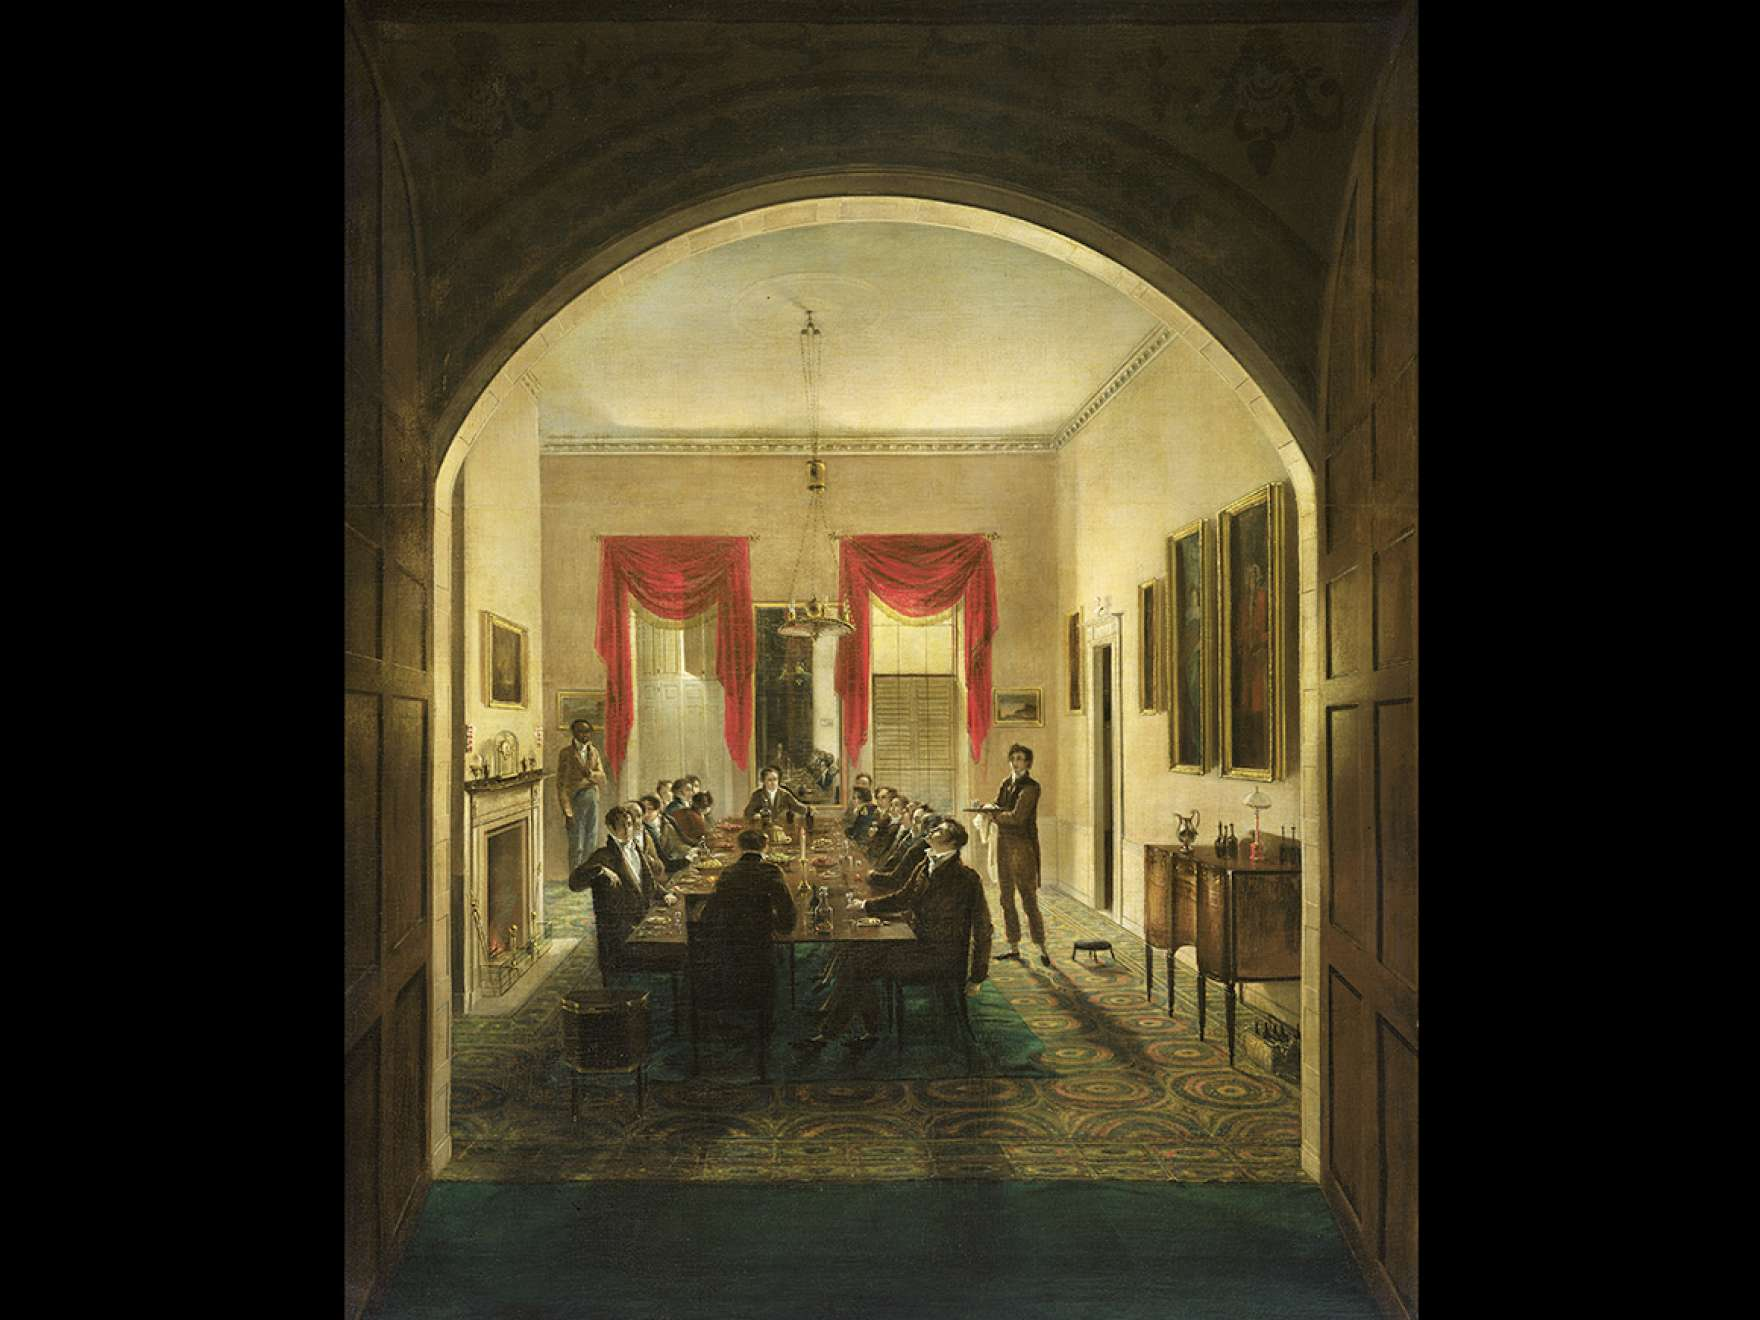 Henry Sargent's painting, The Dinner Party, about 1821